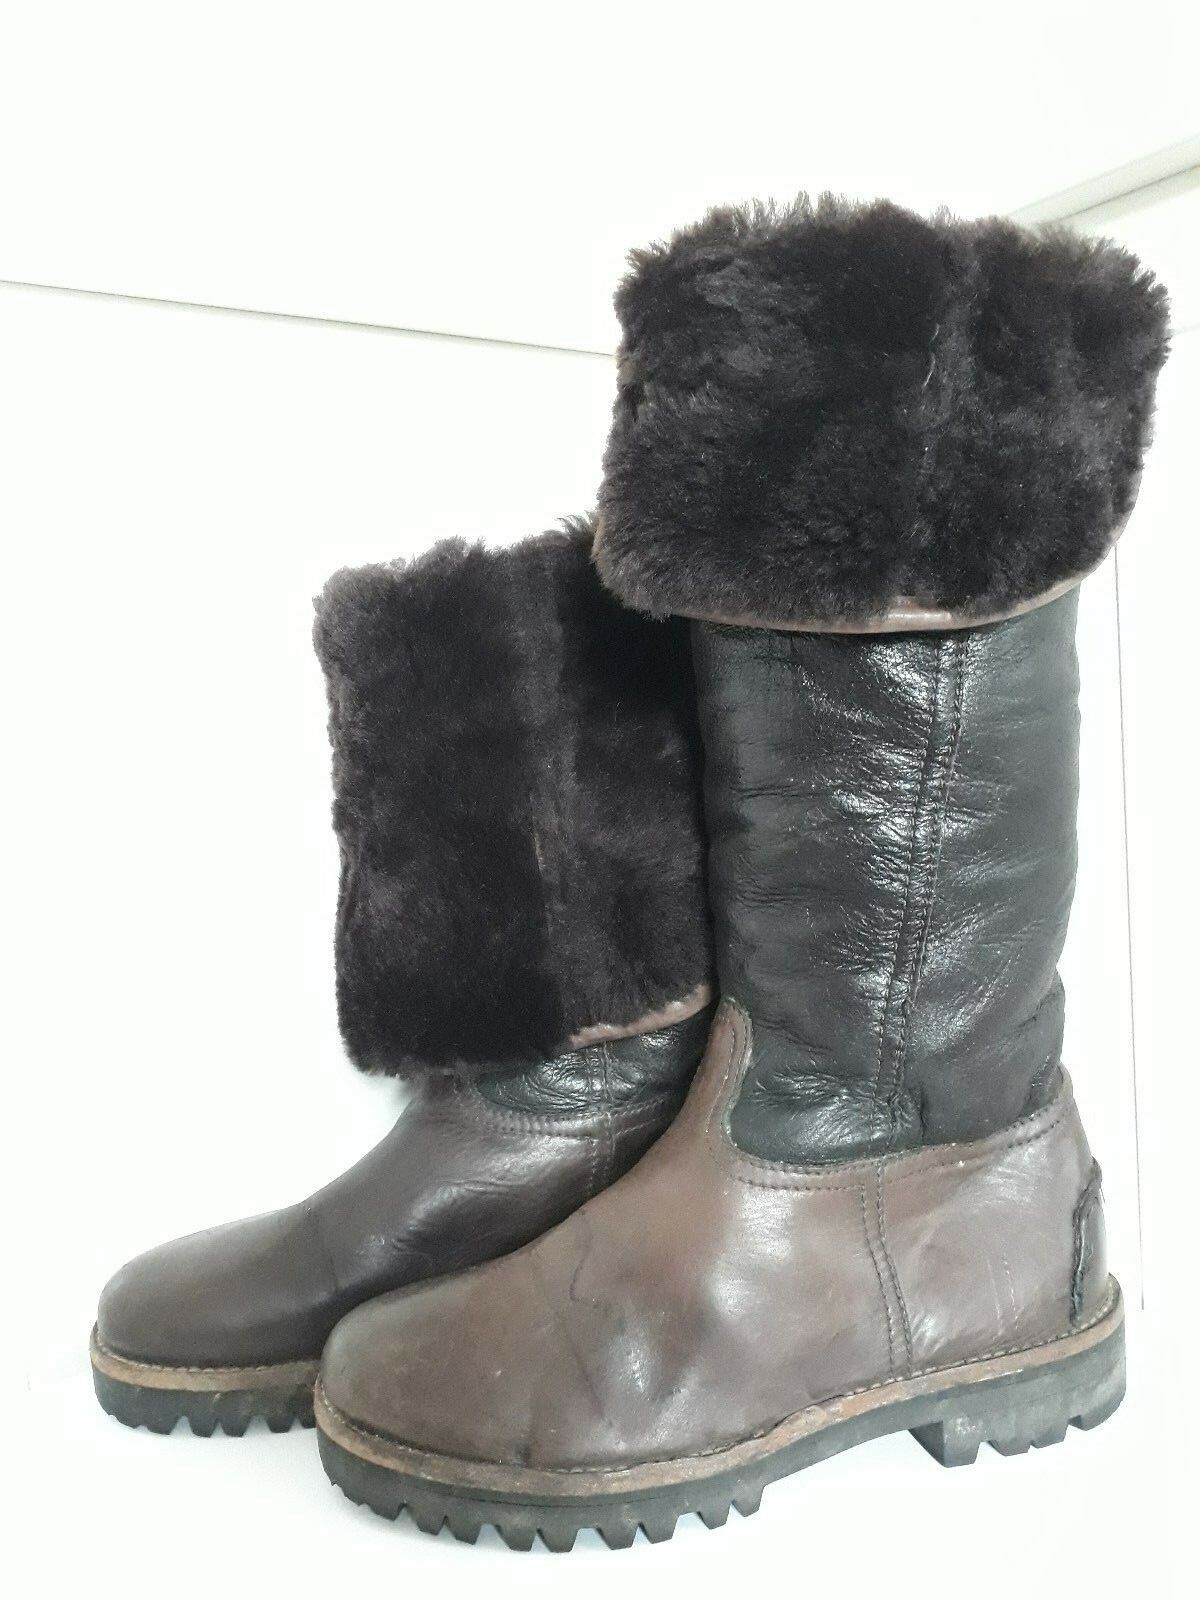 Genuine 3 in 1 Kennel & Schmenger Winter Boots Size 3   36 Real Leather & Wool